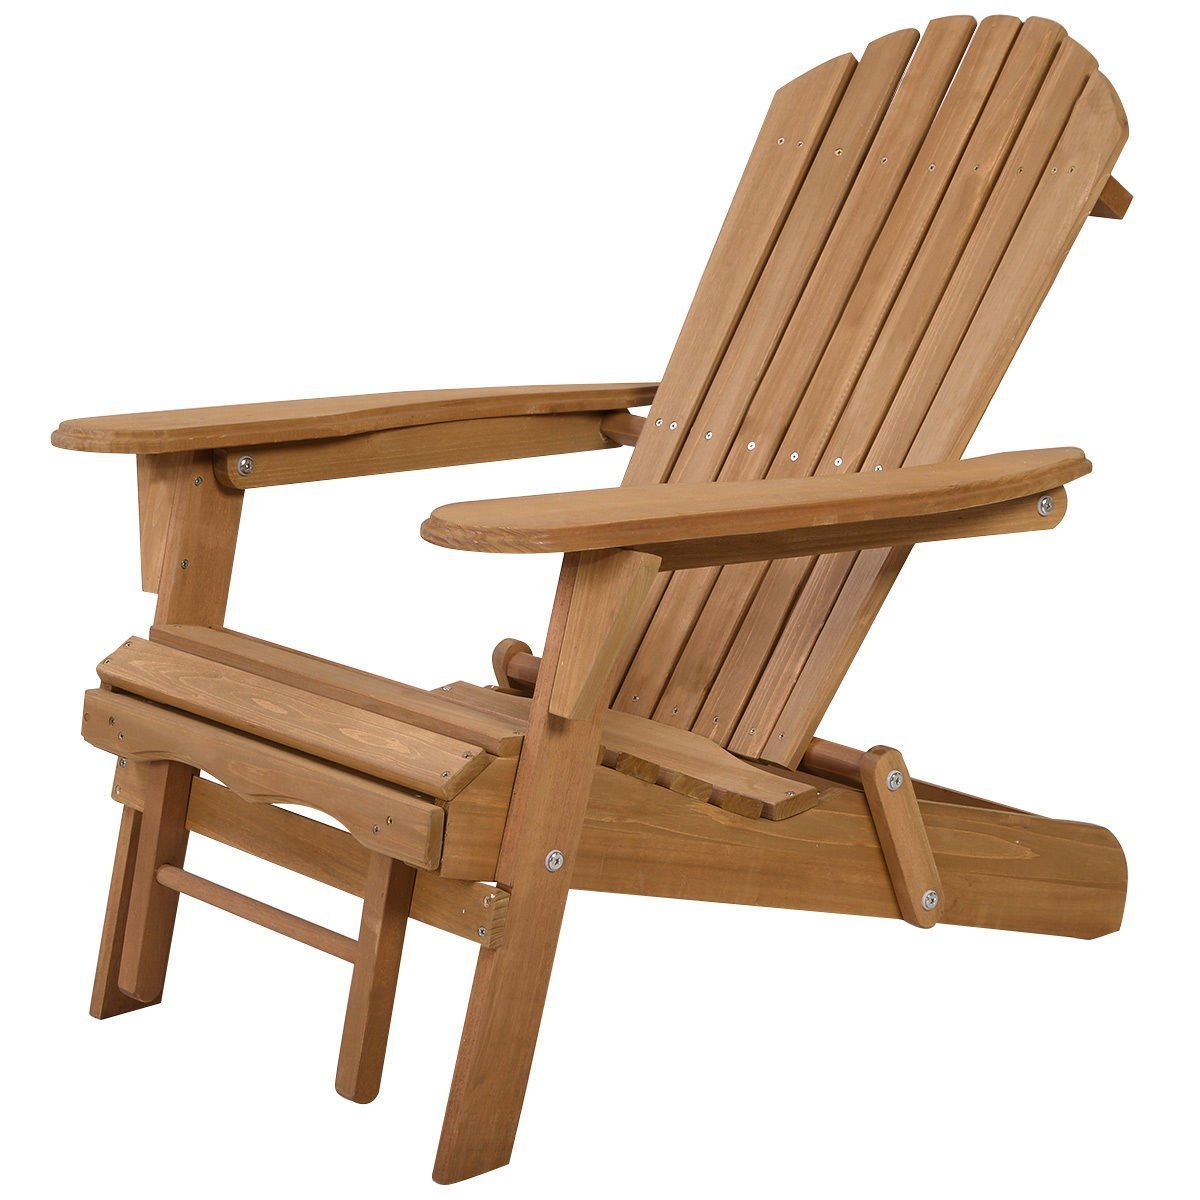 Giantex New Outdoor Foldable Fir Wood Adirondack Chair Patio Deck Garden Furniture ¡­ (earthy yellow)